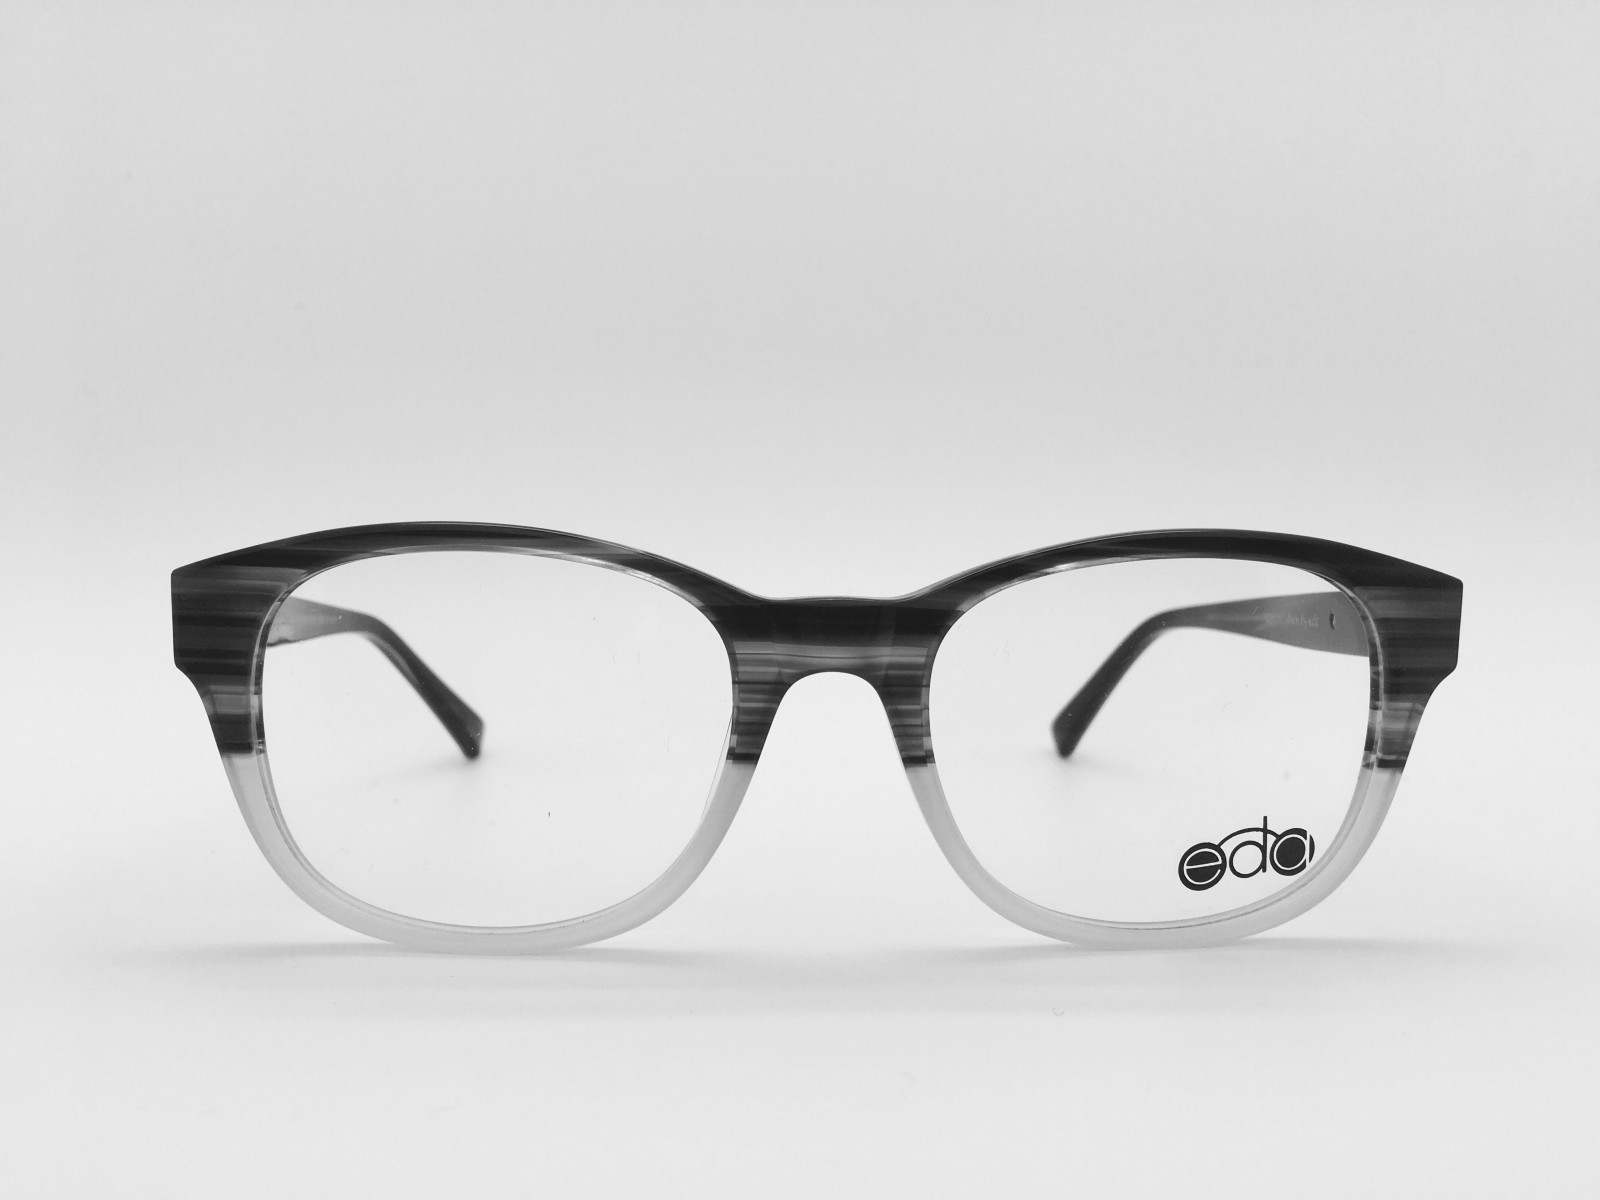 22c8ae3203 These all are the best Eyeglass Frames for thick lenses provided by EDA  Frames. EDA Frames is one of the best custom eyewear manufacturing company  located ...